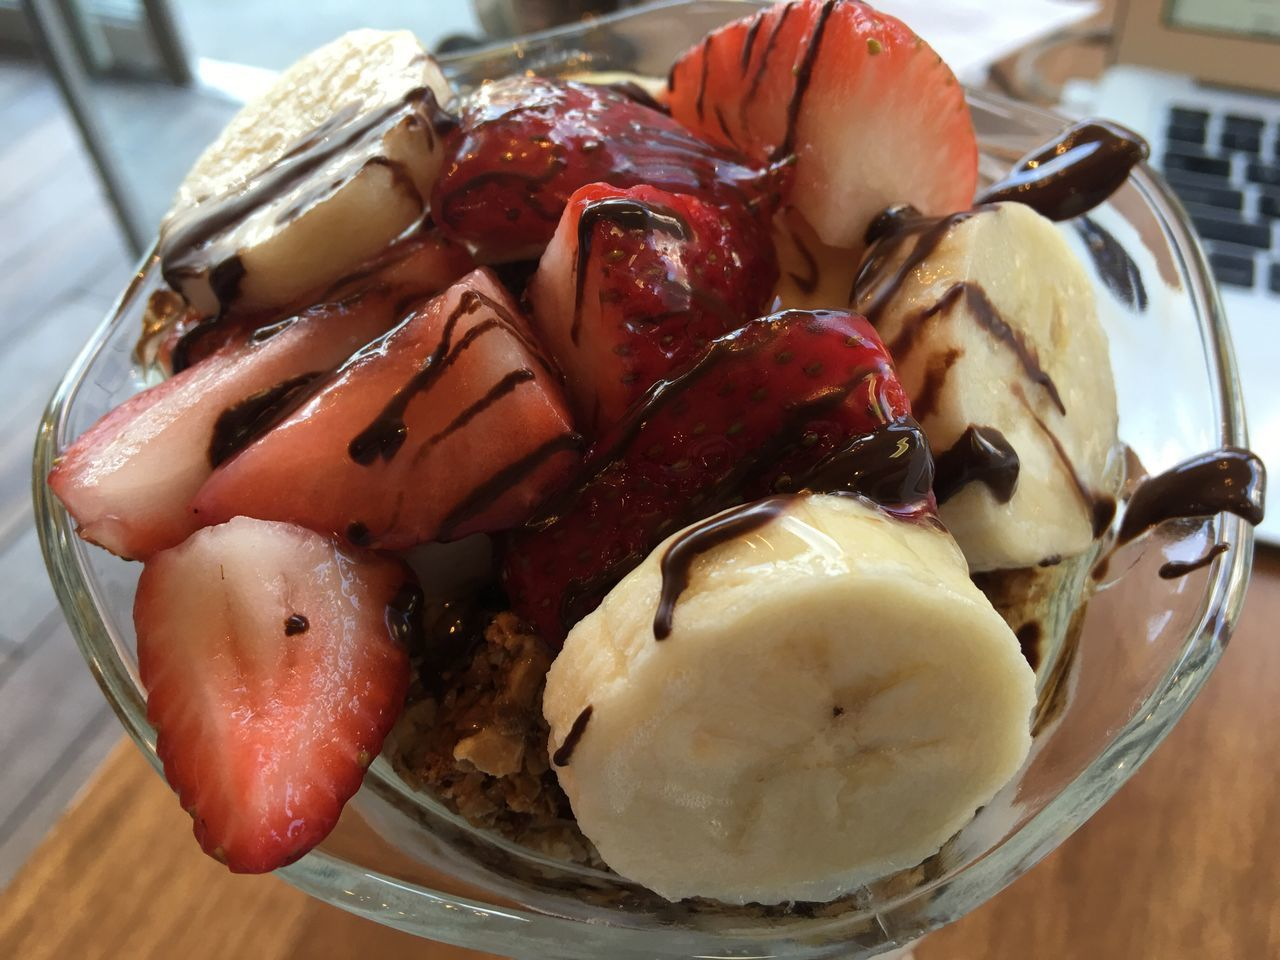 High Angle View Of Granola With Strawberry And Banana Slices In Bowl On Table